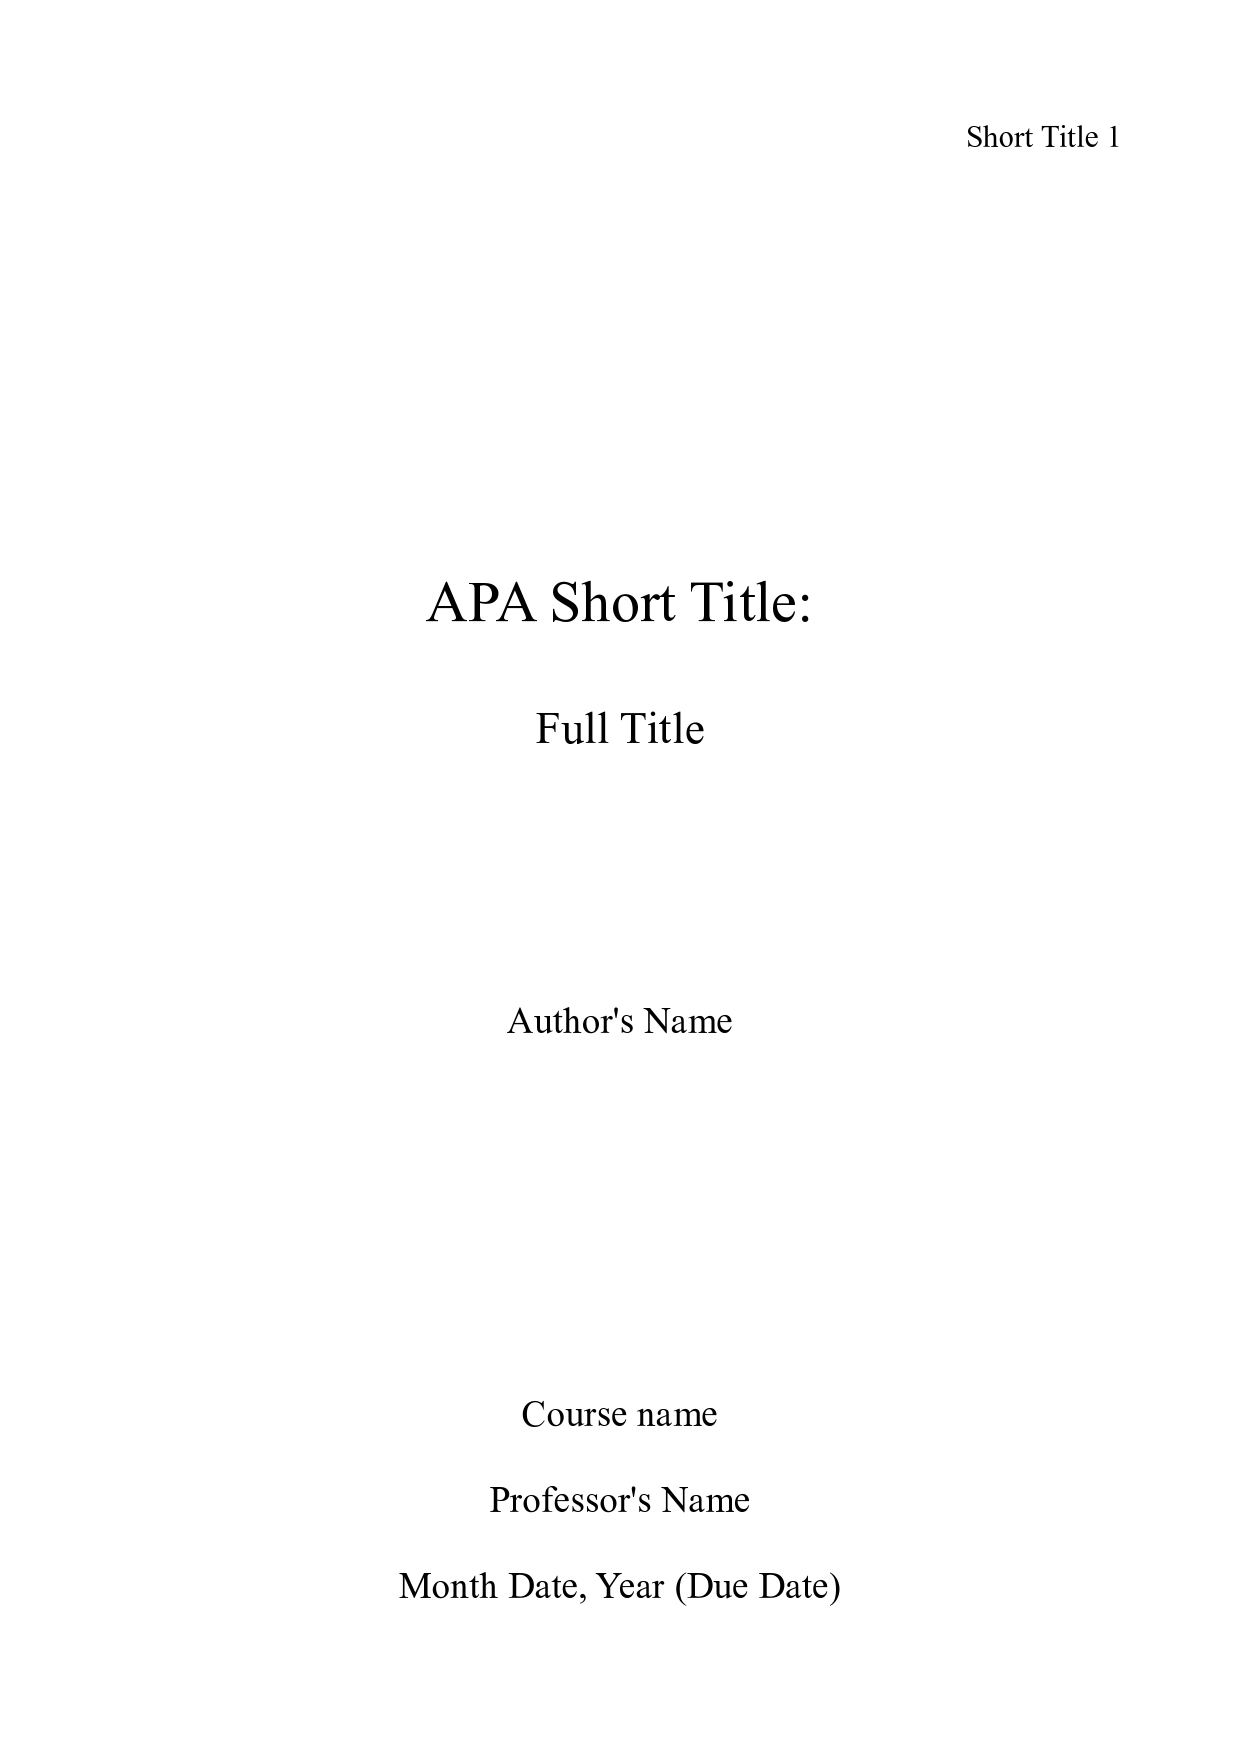 006 Research Paper Apa Title Page Sample Cover Breathtaking Letter Full